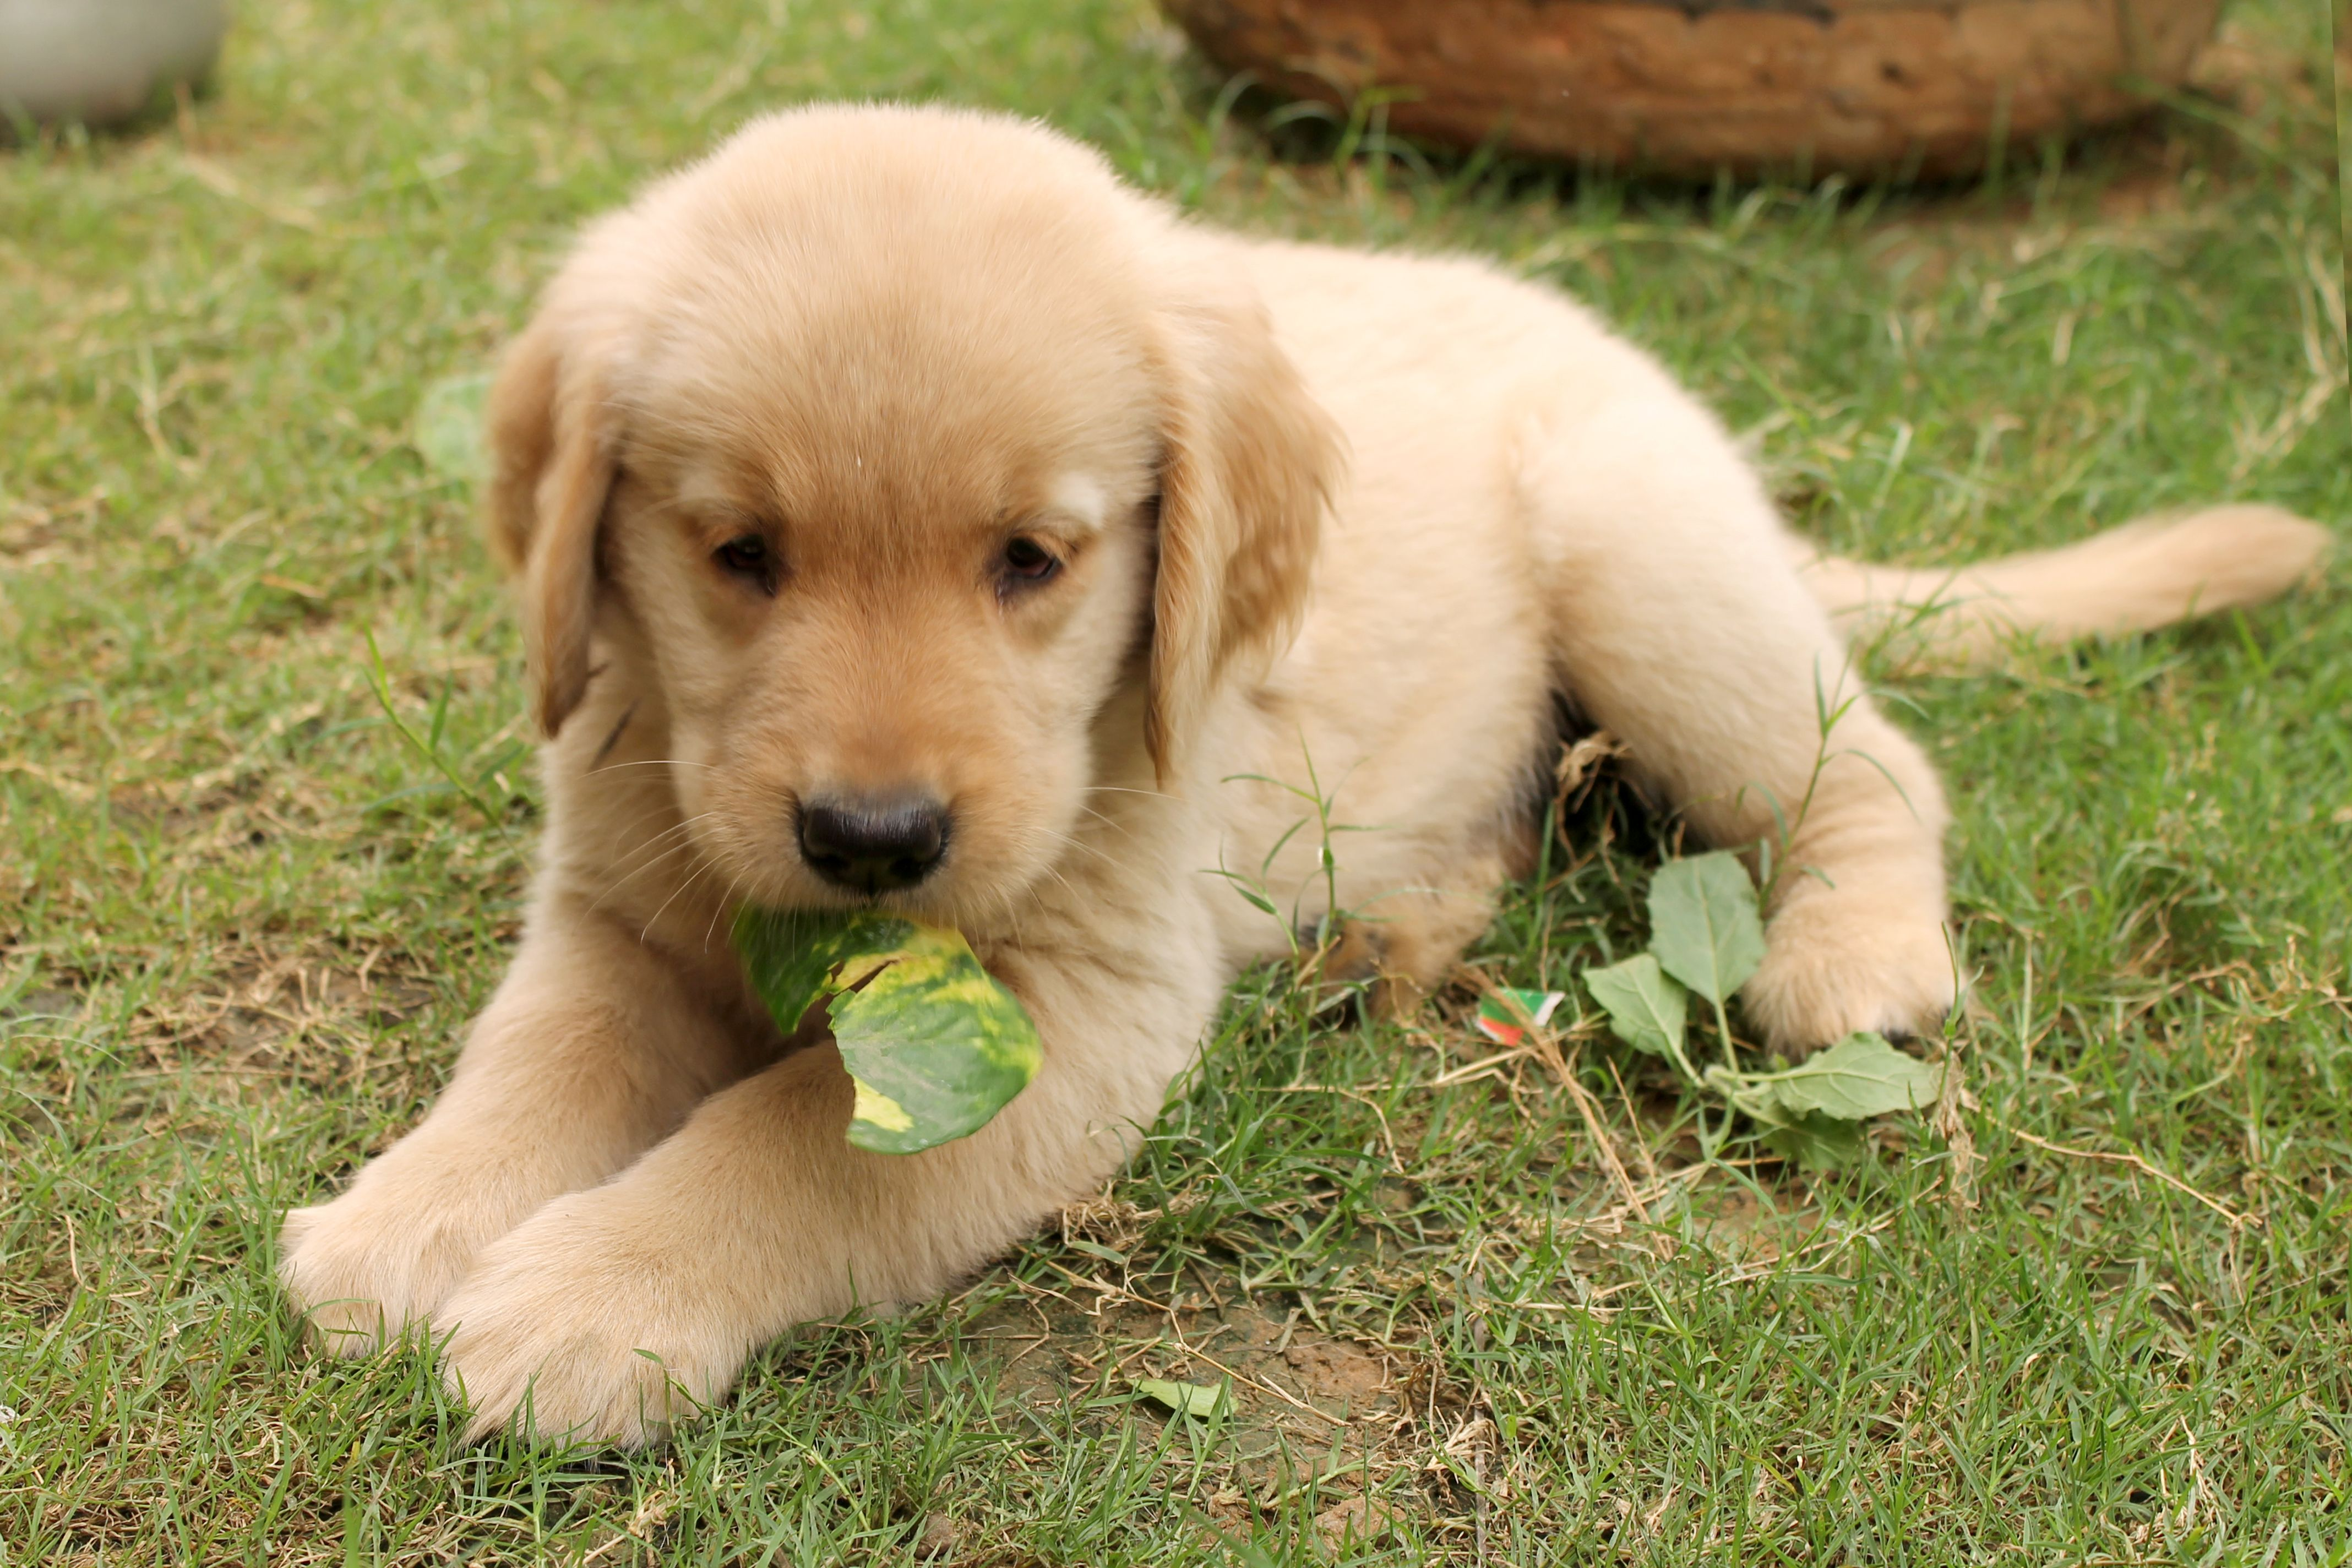 cute little golden retriever puppy. For more cute pictures